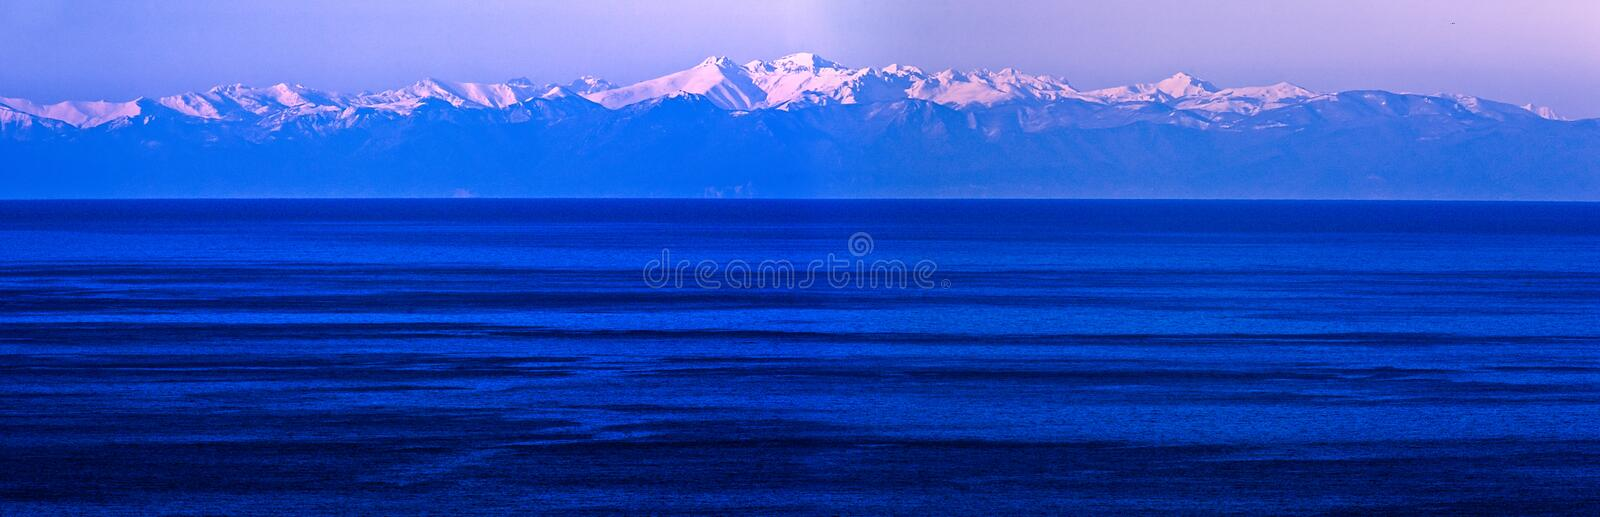 Download Snowy Mountains Over Blue Wintery Sea Stock Image - Image: 7696463